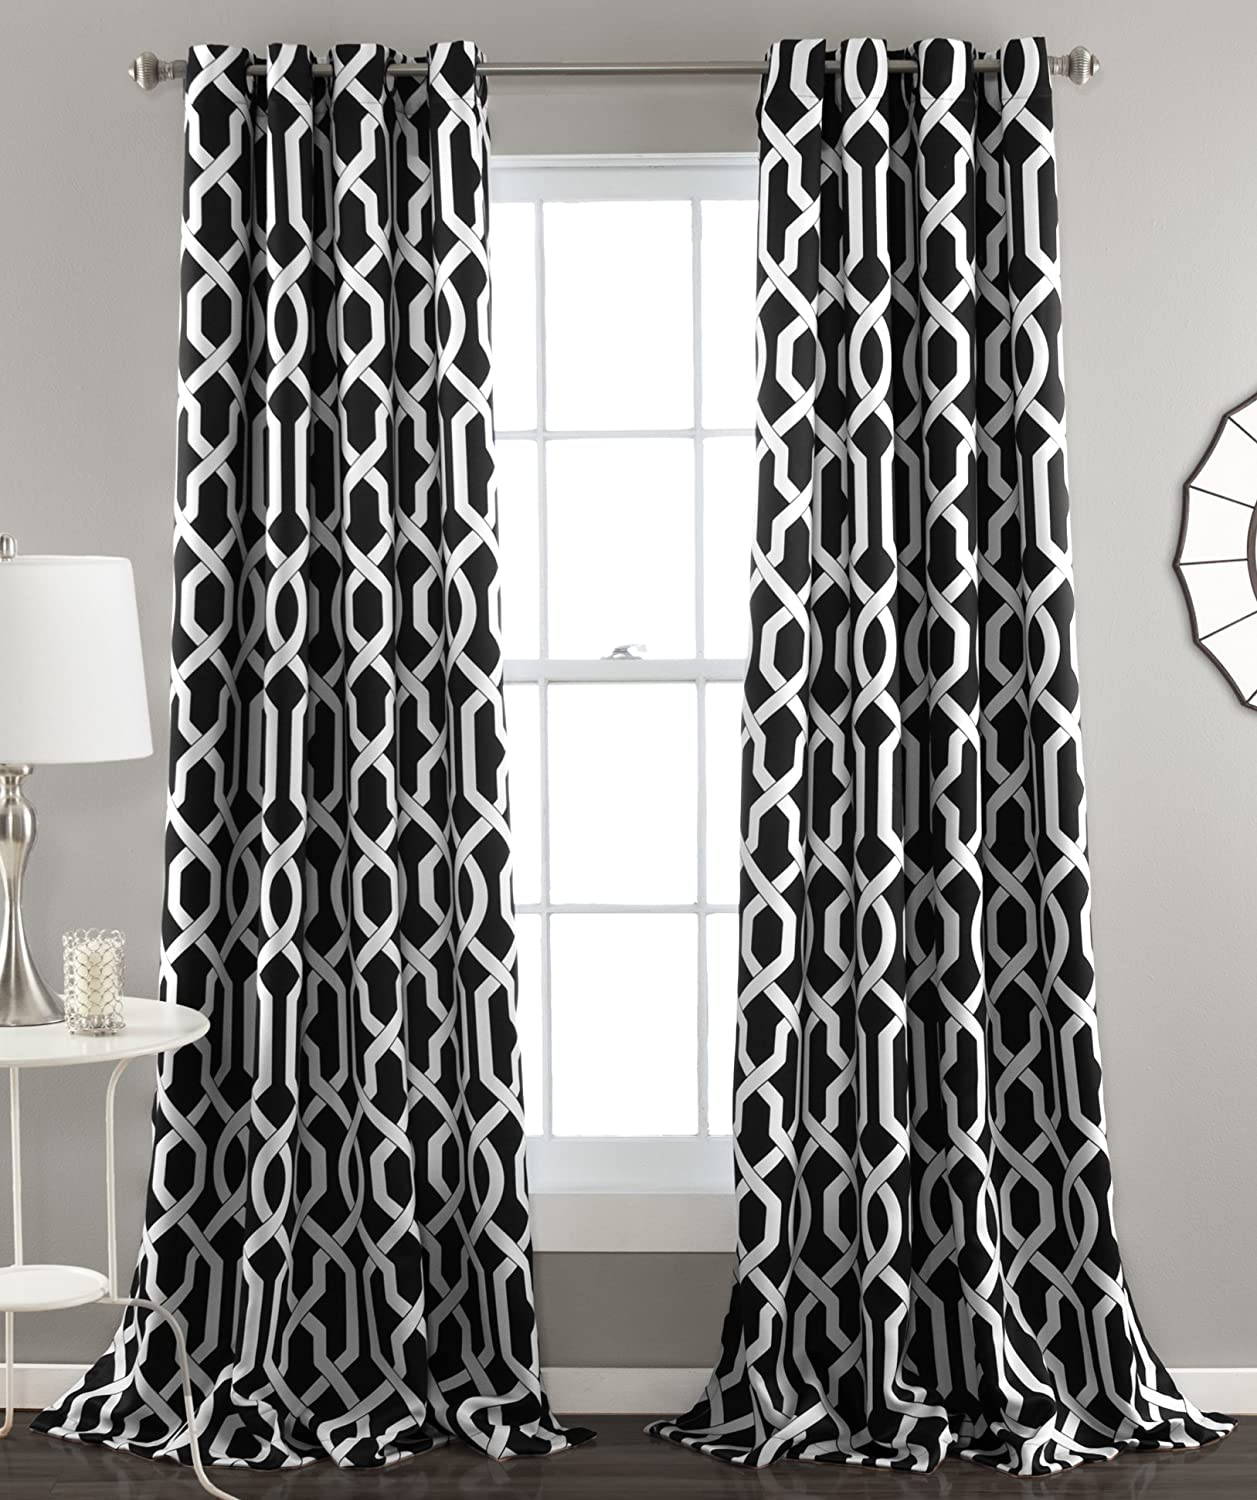 Lush Decor Edward Trellis Room Darkening Window Curtain Panel Pair Black